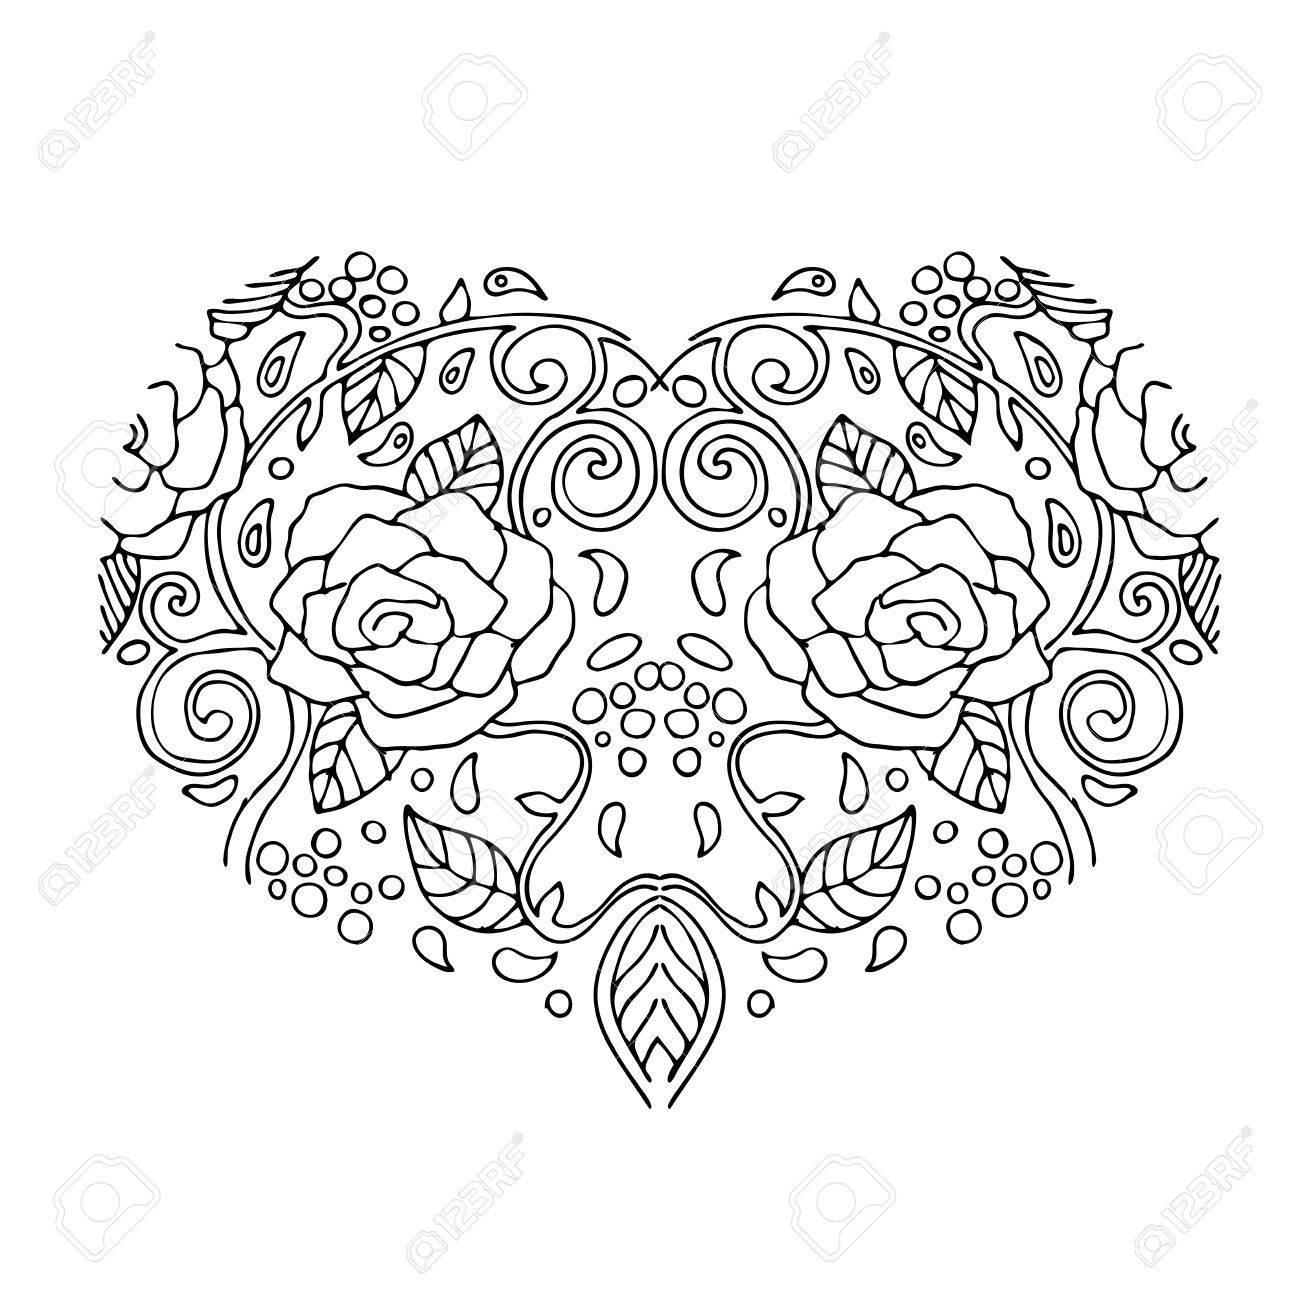 Decorative Love Heart With Flowers Valentines Day Card Coloring